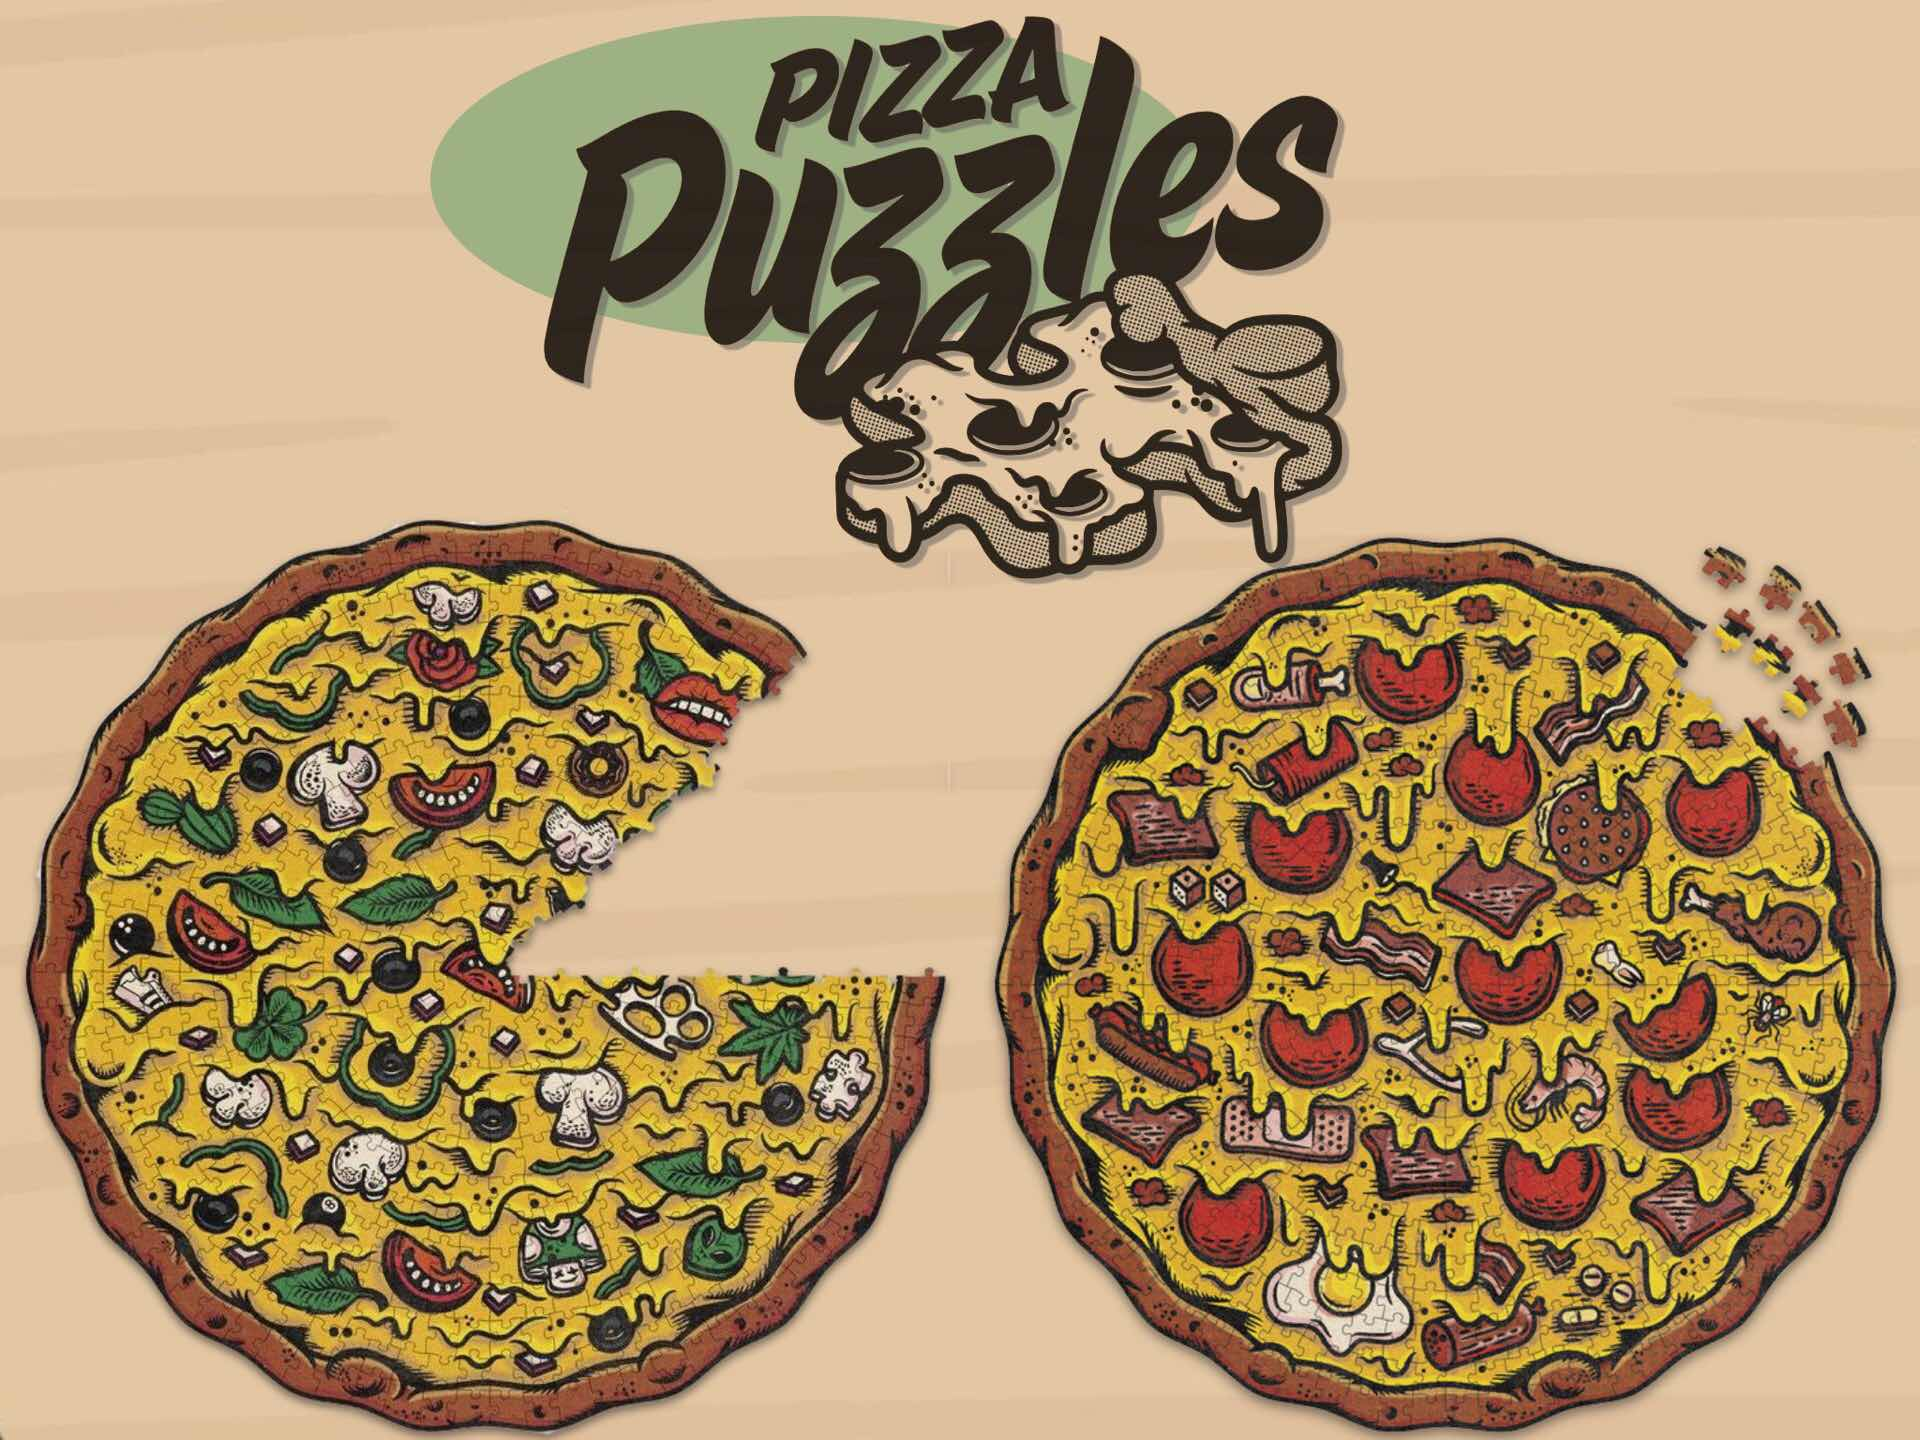 pizza-puzzles-by-stellar-factory